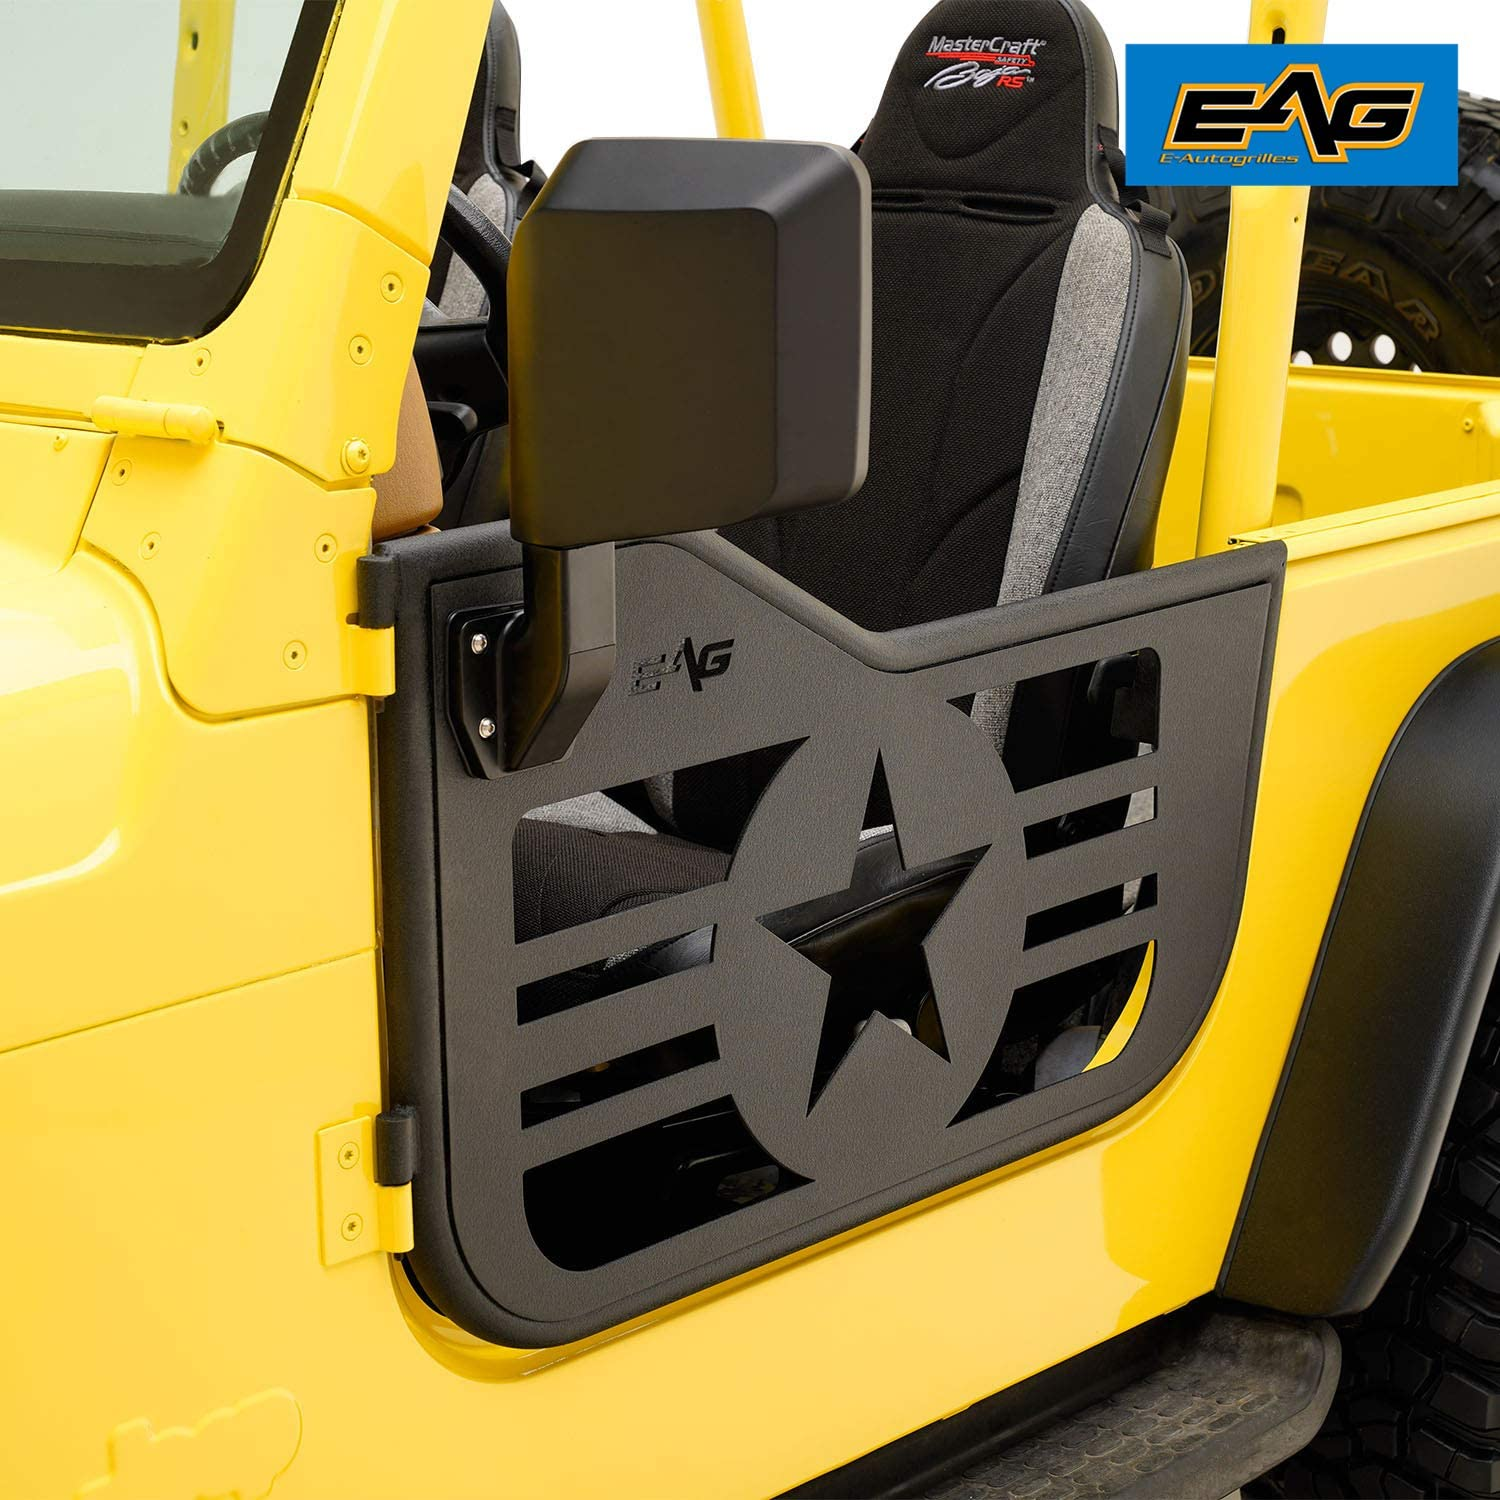 25% OFF EAG Military Max 74% OFF Star 2 Tubular Door with Mirror Fit Side View 9 for